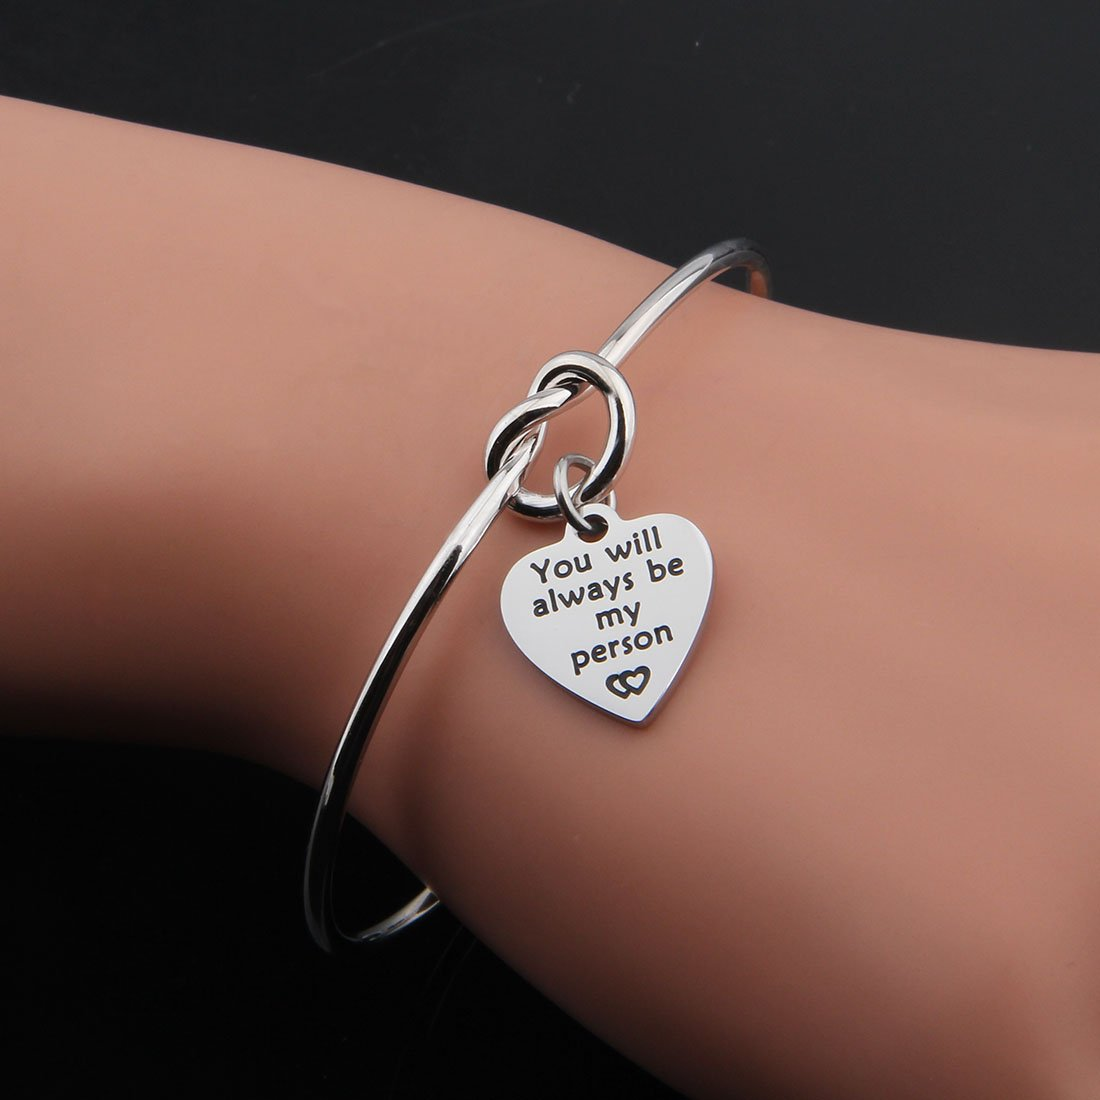 KUIYAI You will always be My Person Bracelet Knot Cuff Bracelet for Couples Best Friends Gift (You will always be my person cuff) by KUIYAI (Image #4)